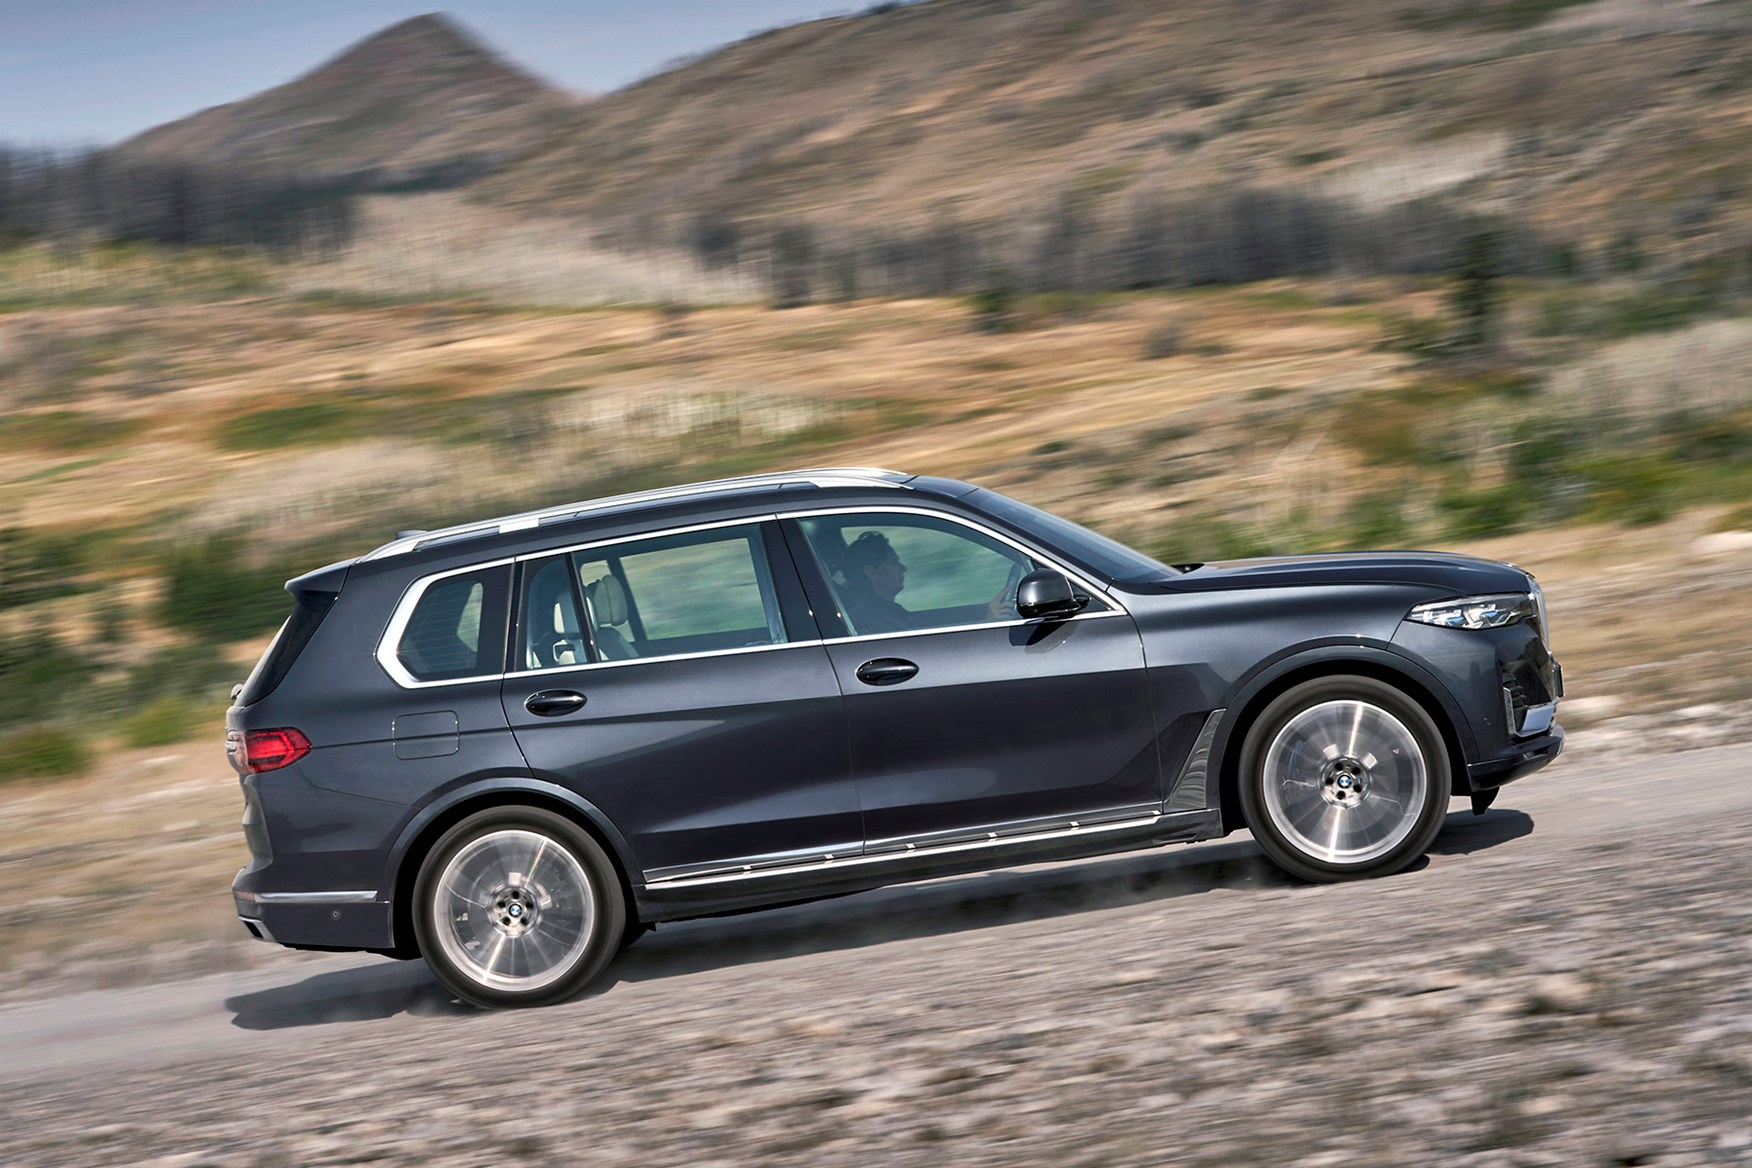 Bmw X7 Suv Early Drive Review Parkers